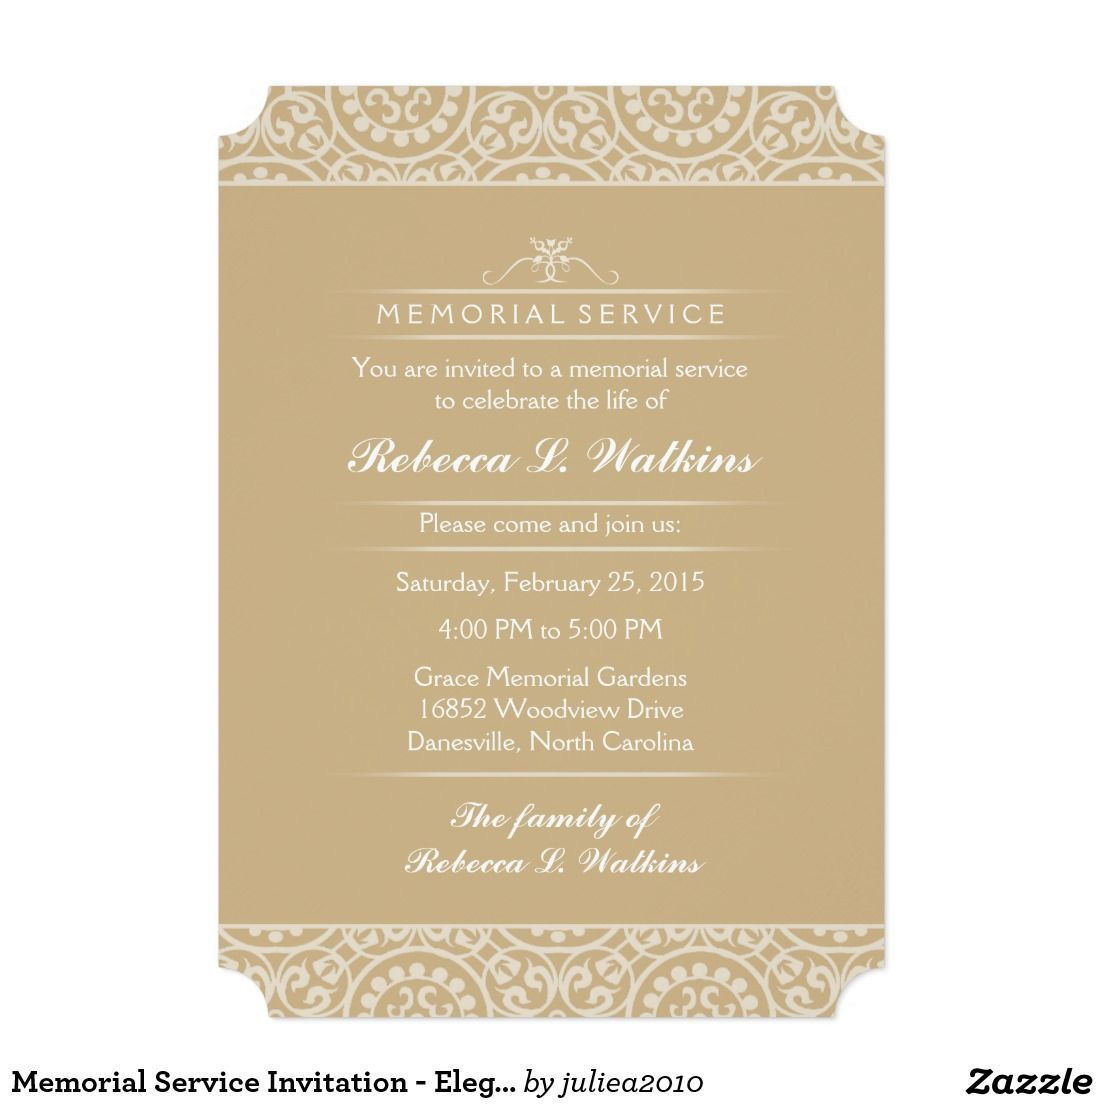 001 Awesome Funeral Invitation Template Free Design  Memorial Service Card ReceptionFull